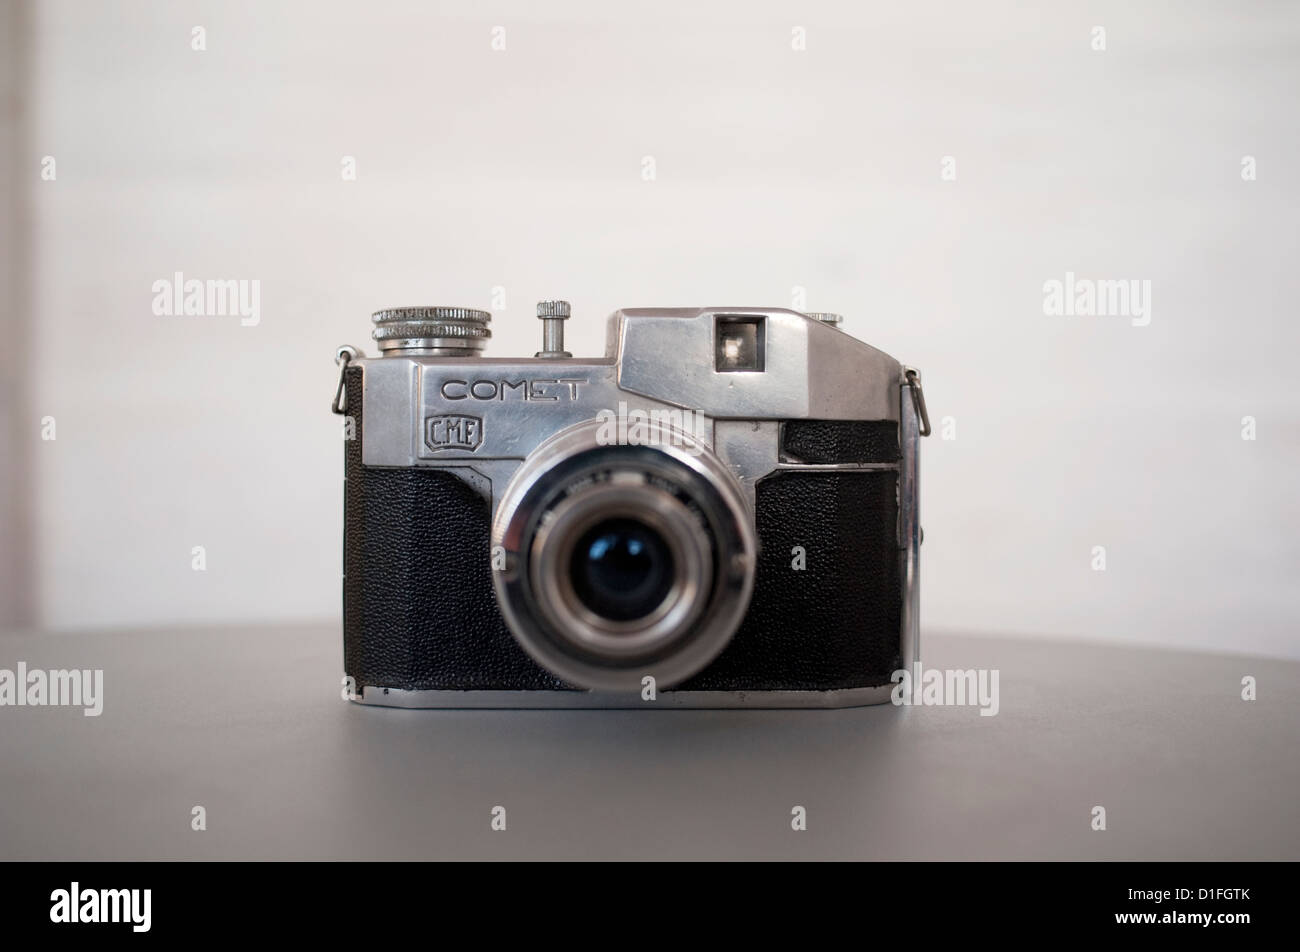 Bencini Comet camera made in Italy by CMF Bencini from 1948 into the 1950s. - Stock Image